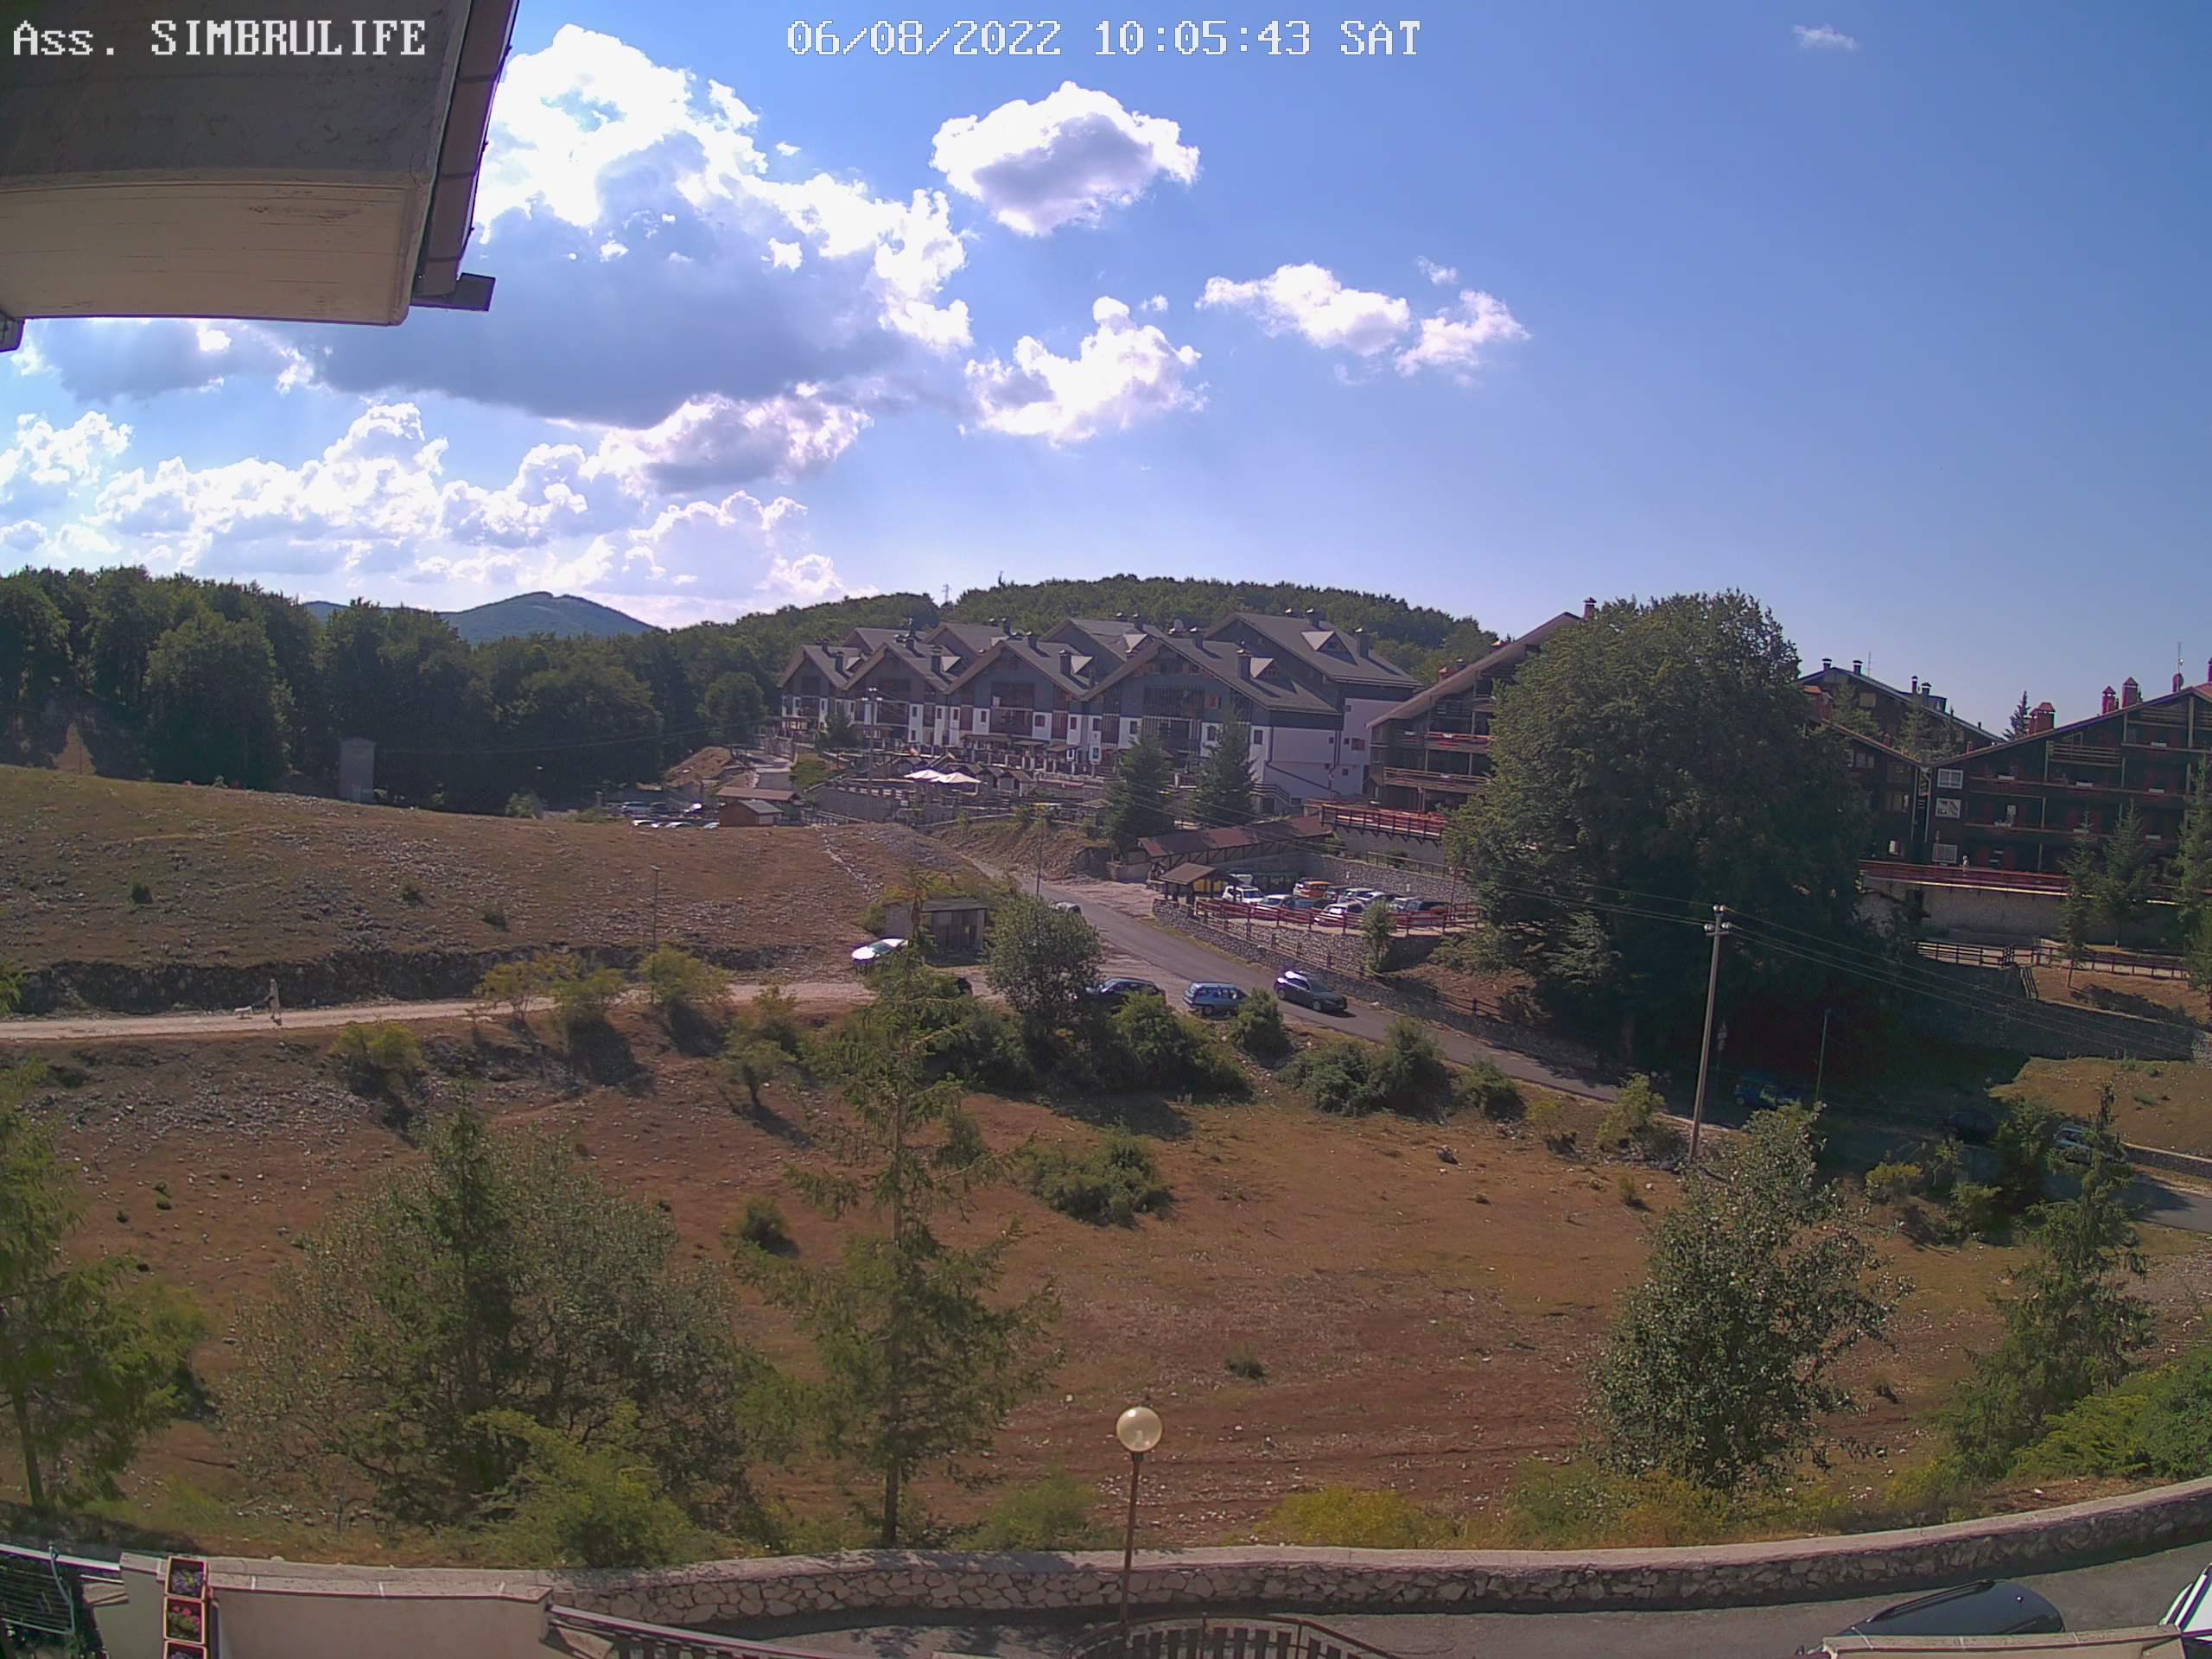 http://www.meteocampaegli.it/webcam/current.jpg